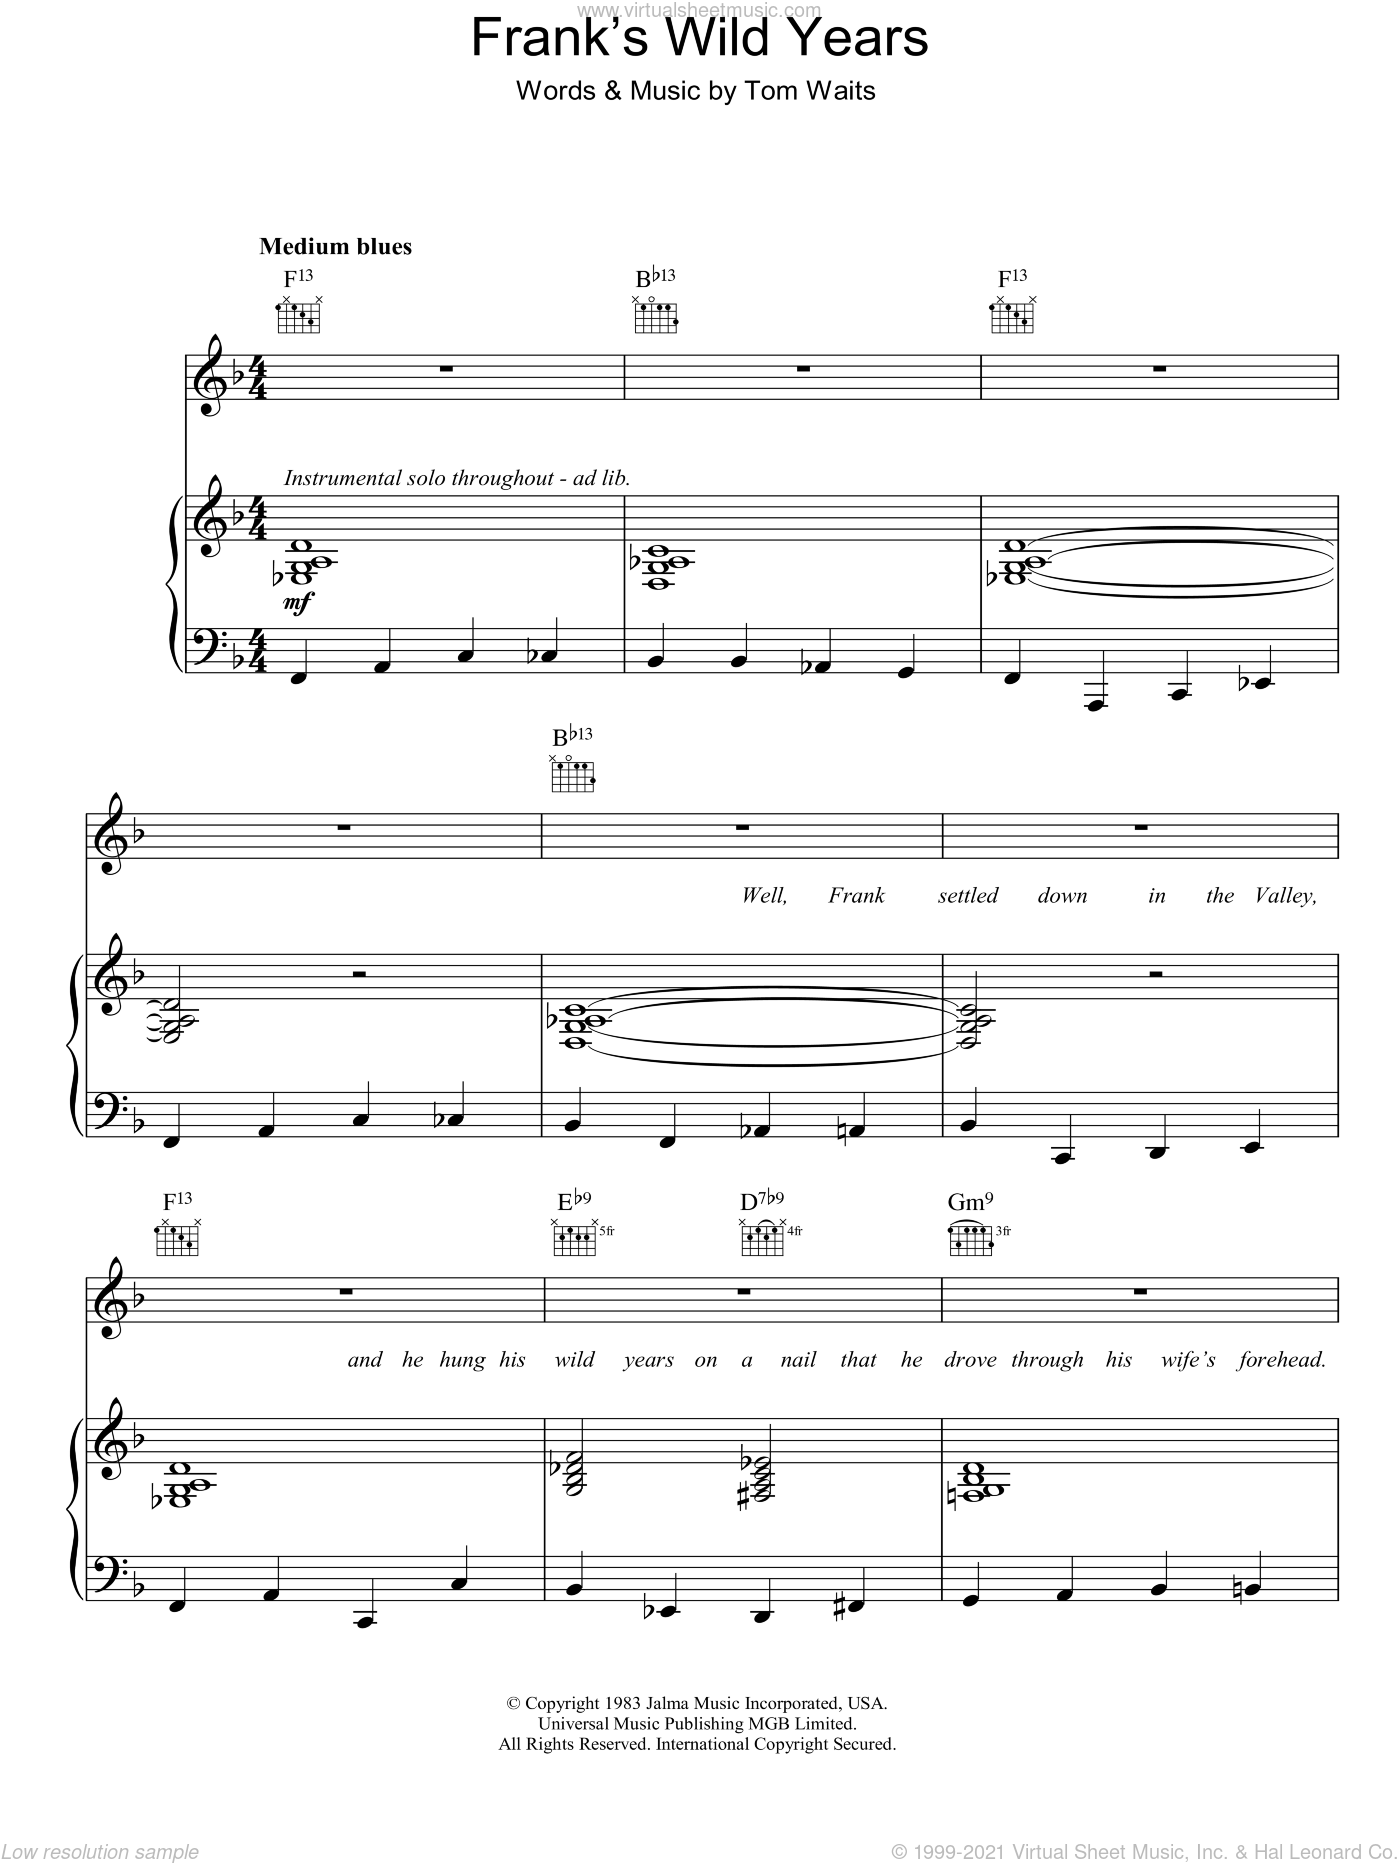 Frank's Wild Years sheet music for voice, piano or guitar by Tom Waits, intermediate skill level